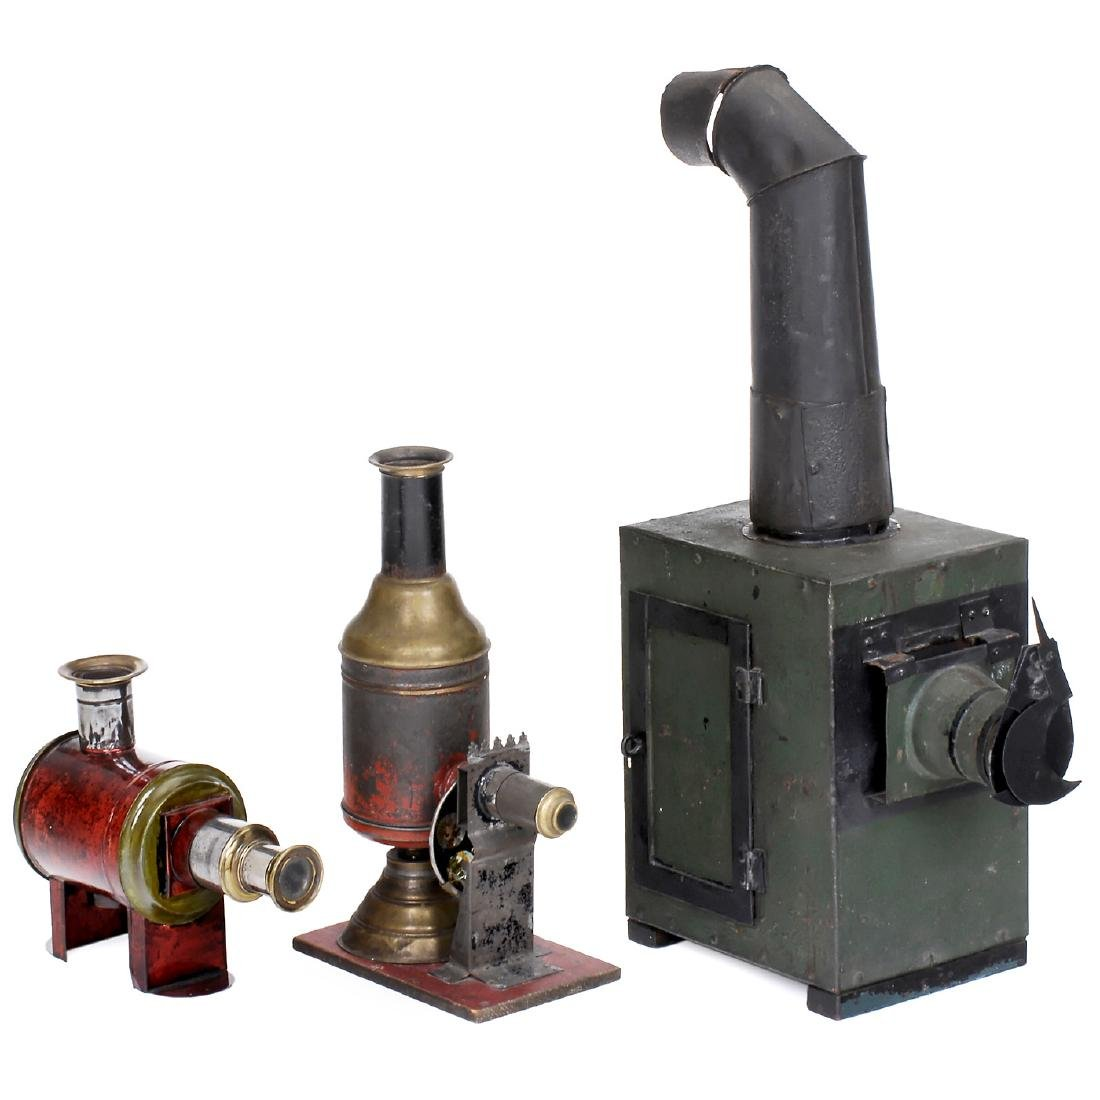 3 Assorted Magic Lanterns, c. 1870-90